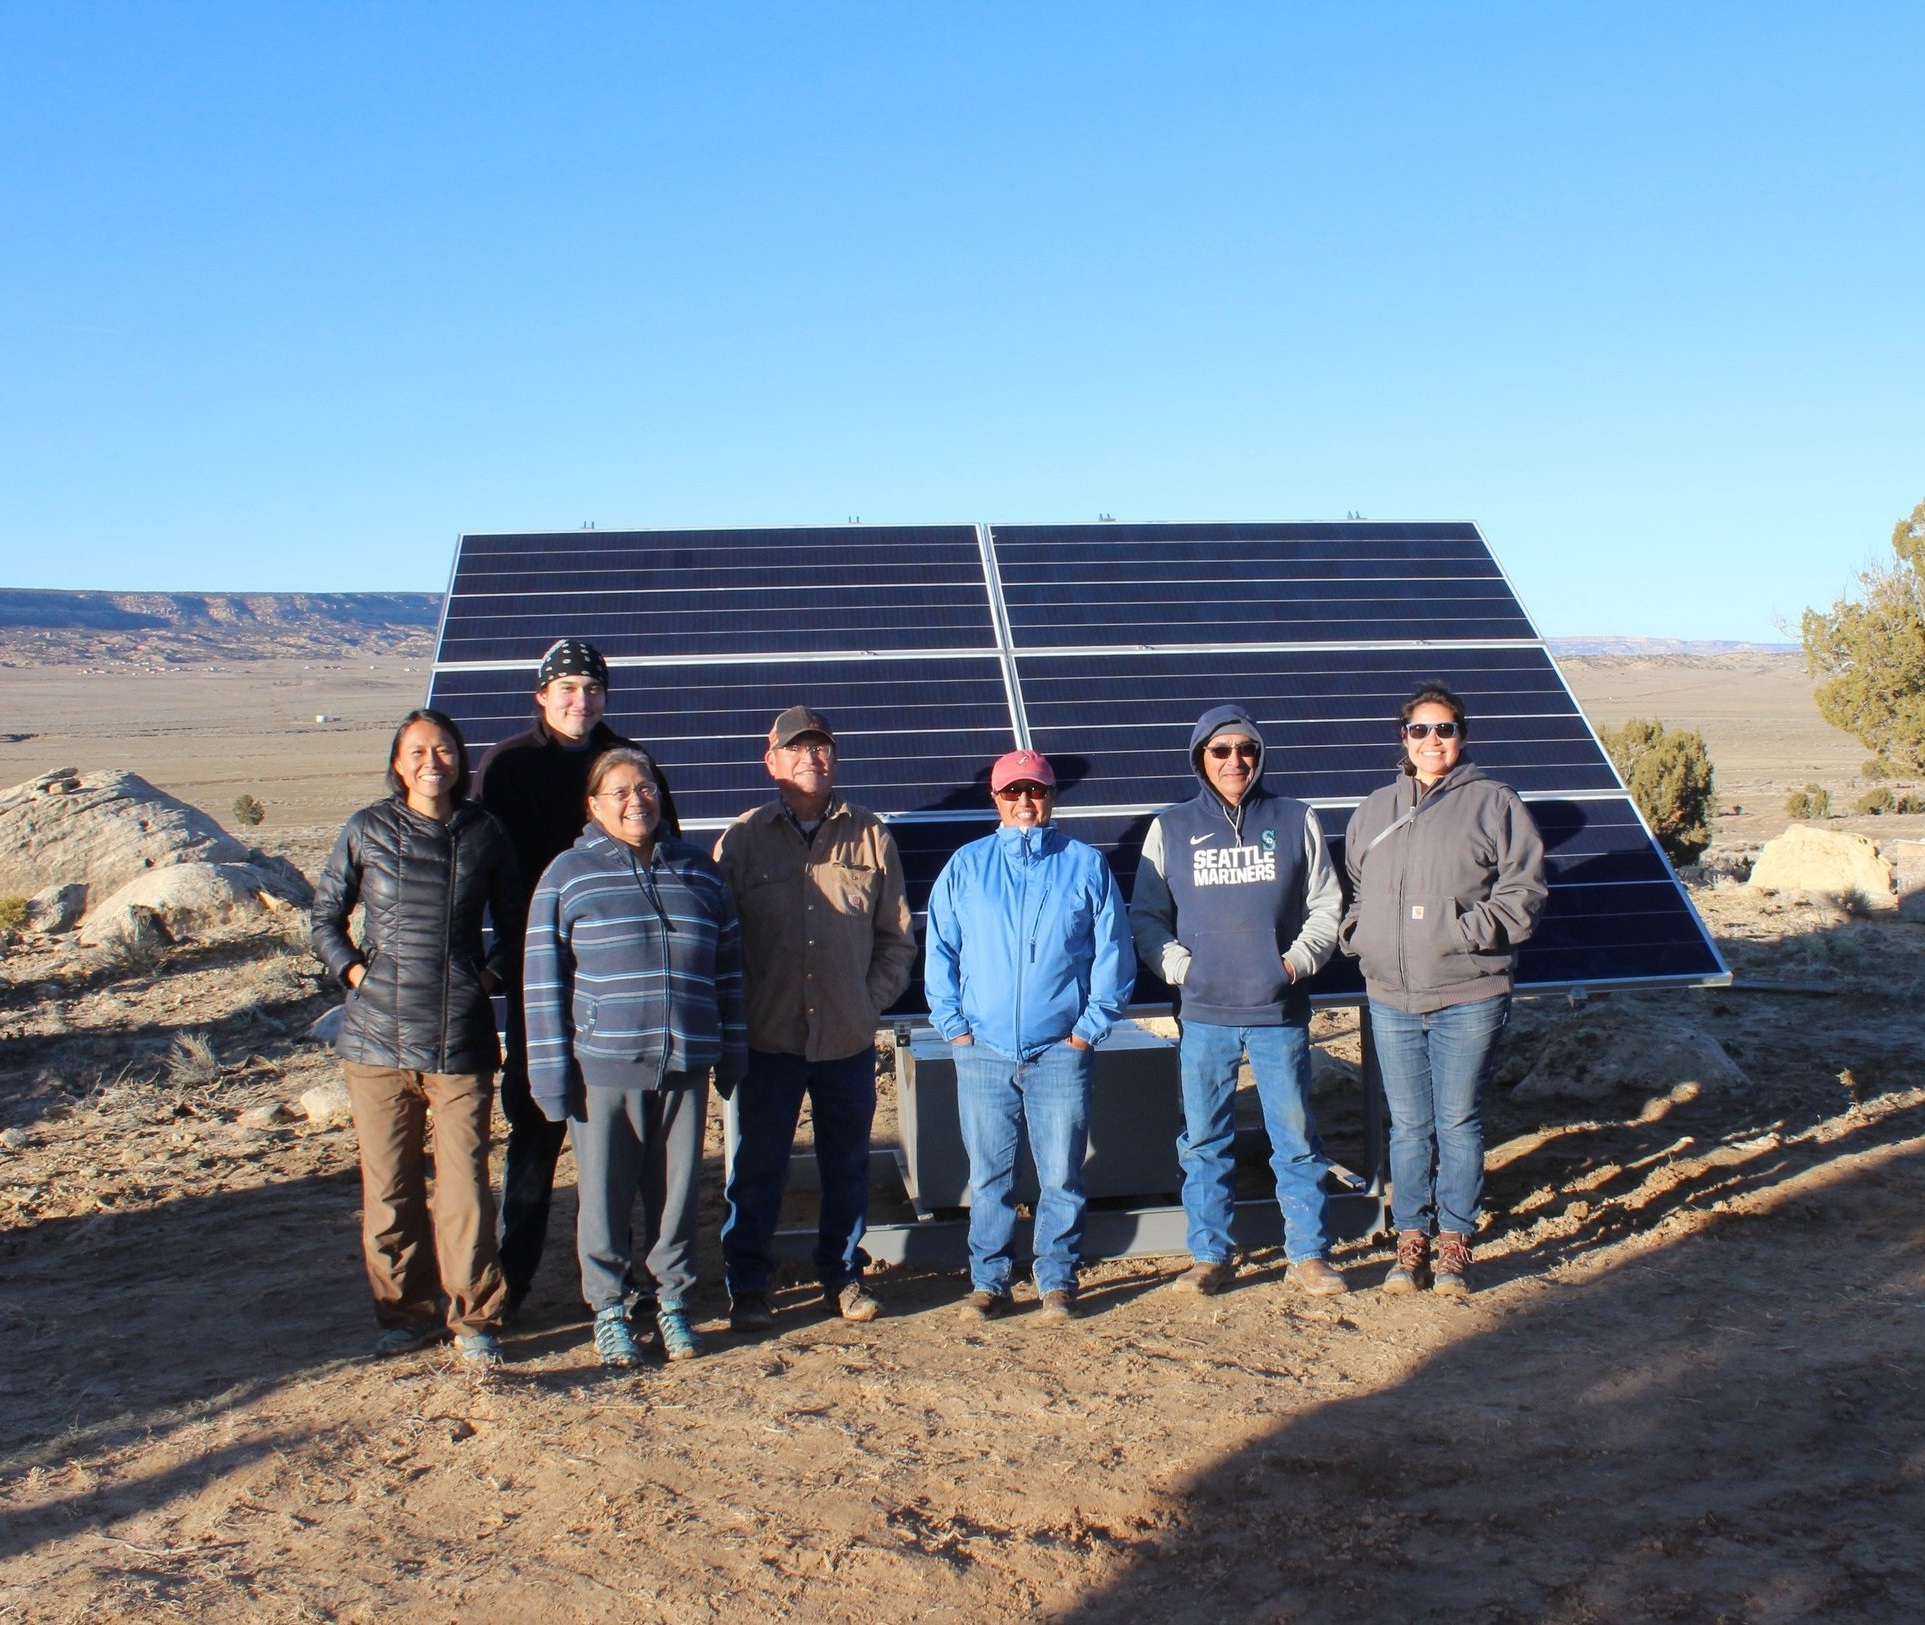 About - Native Renewables formed in 2016 to catalyze clean energy for Native American homes and communities by building partnerships, seeking cost-effective solutions that will reduce fossil fuel use, supporting local economic development, and growing technical capacity.